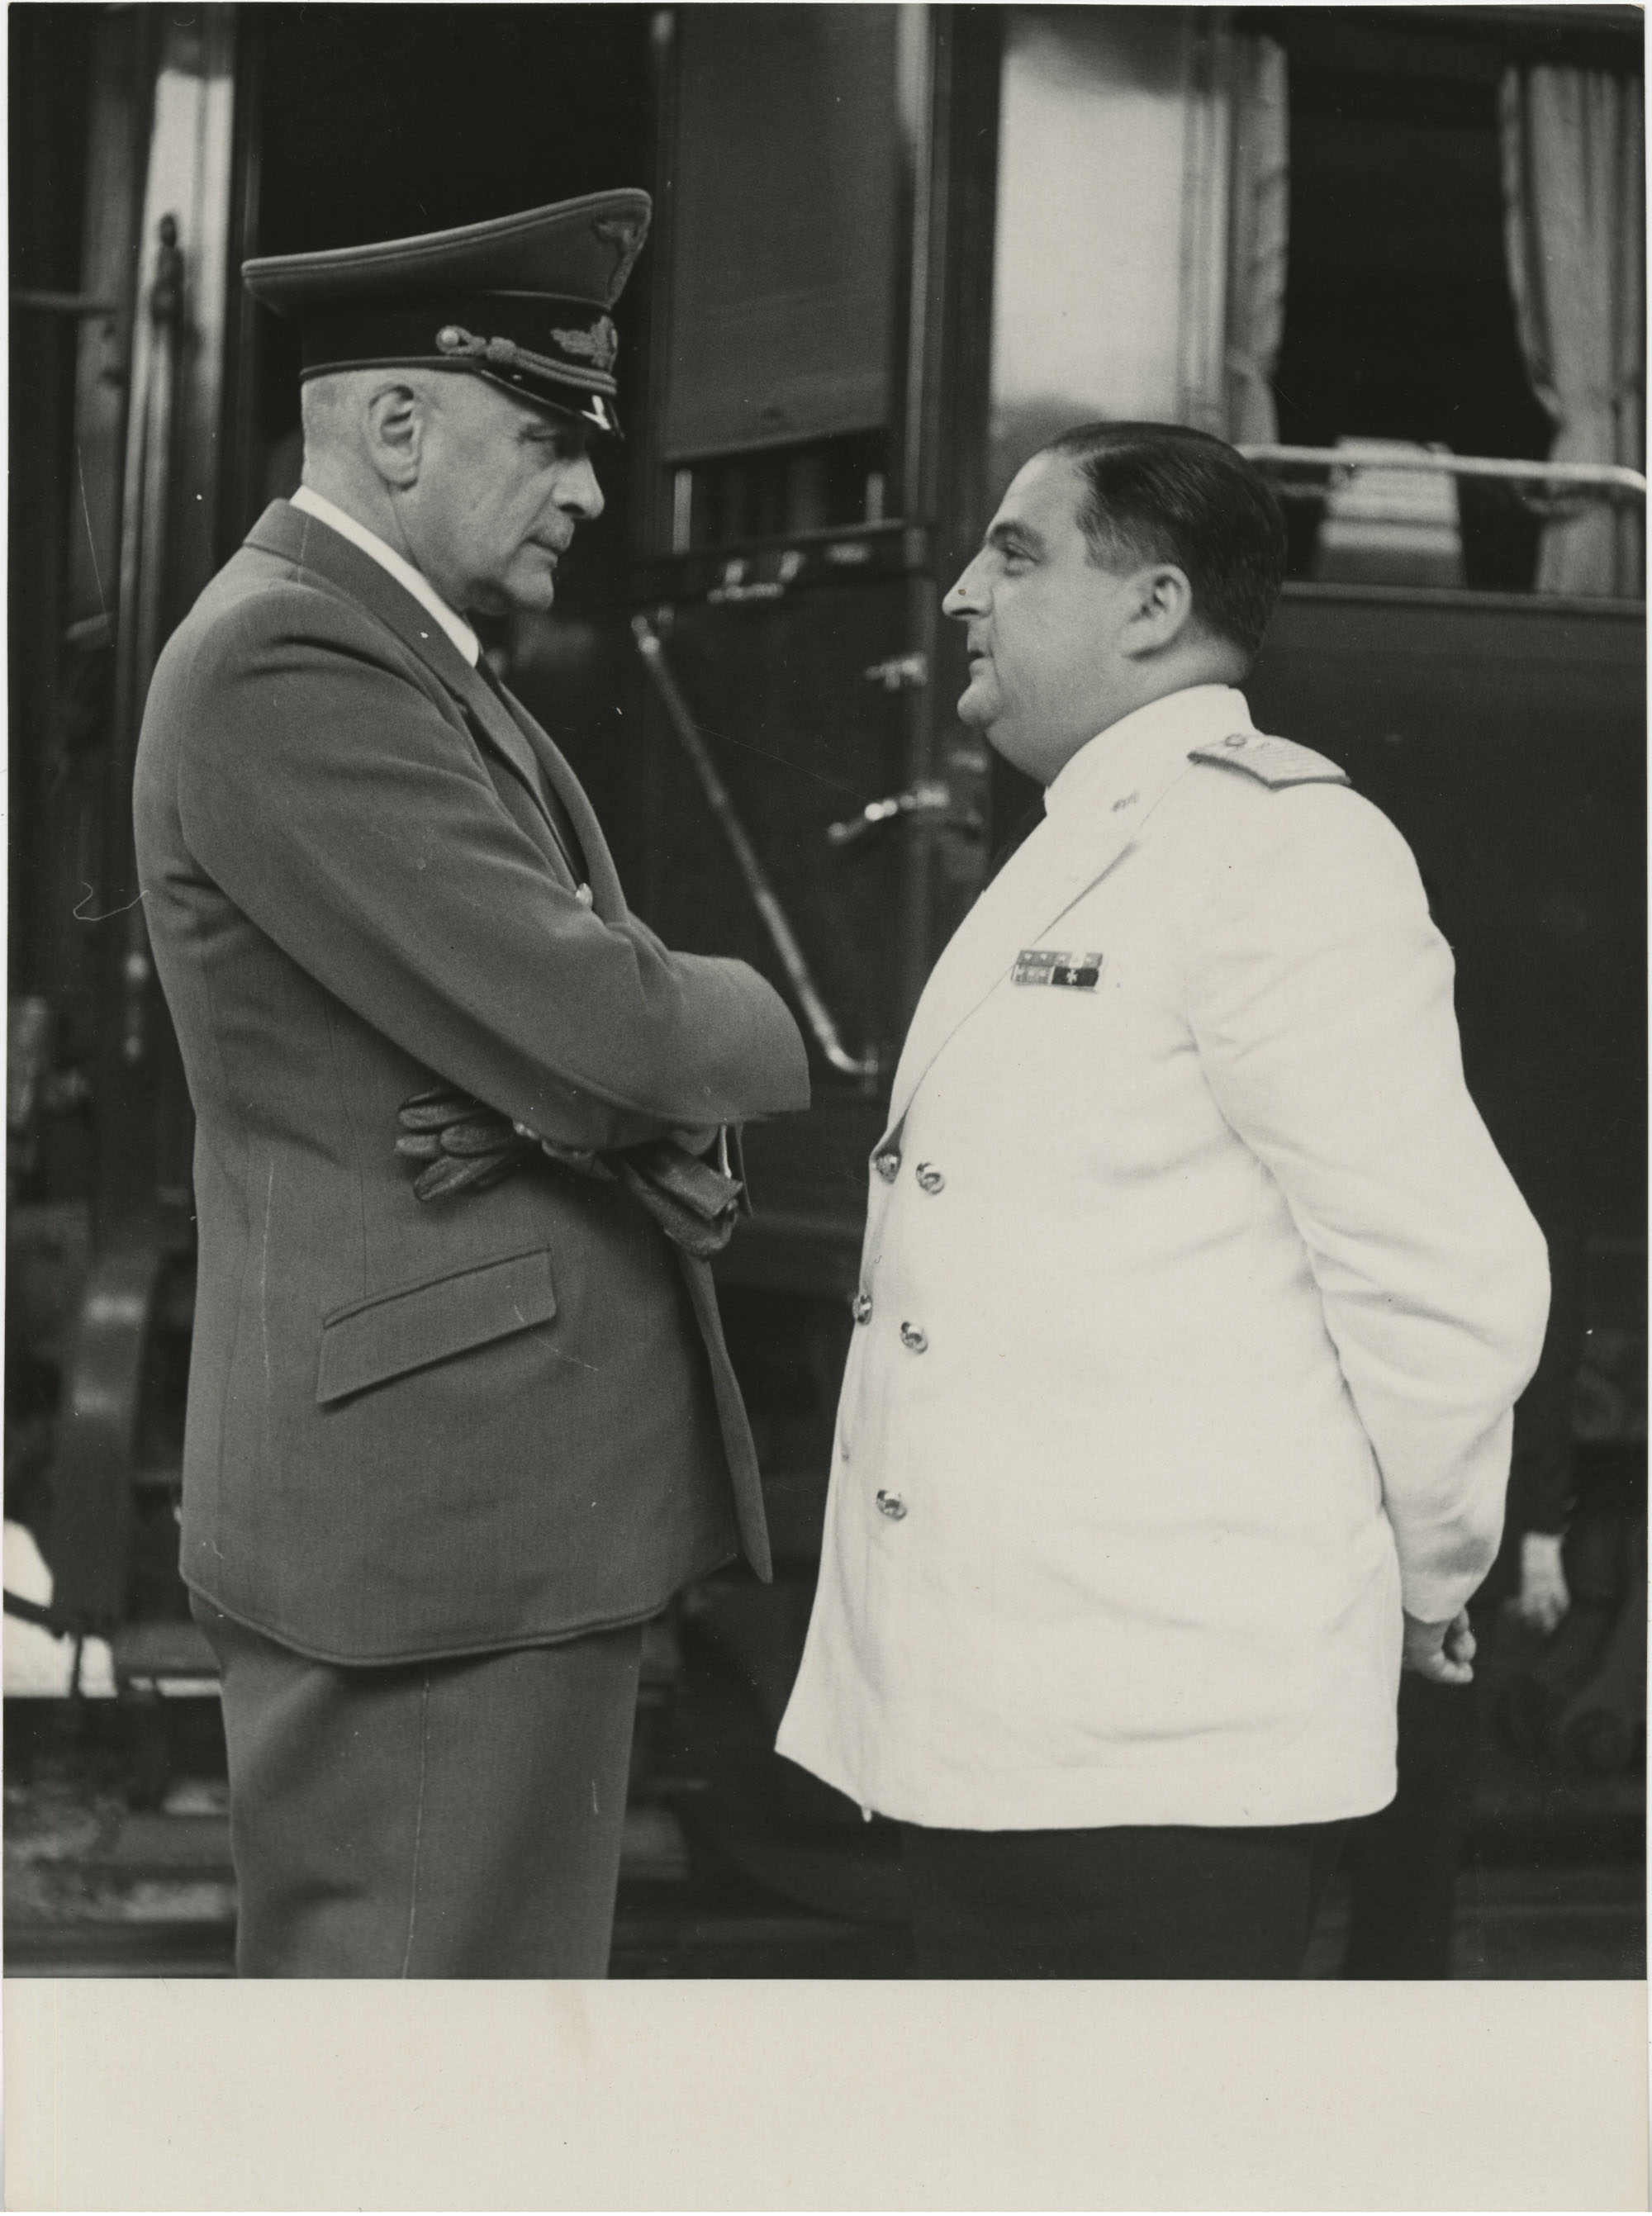 Military officials at a train station, Photograph 2